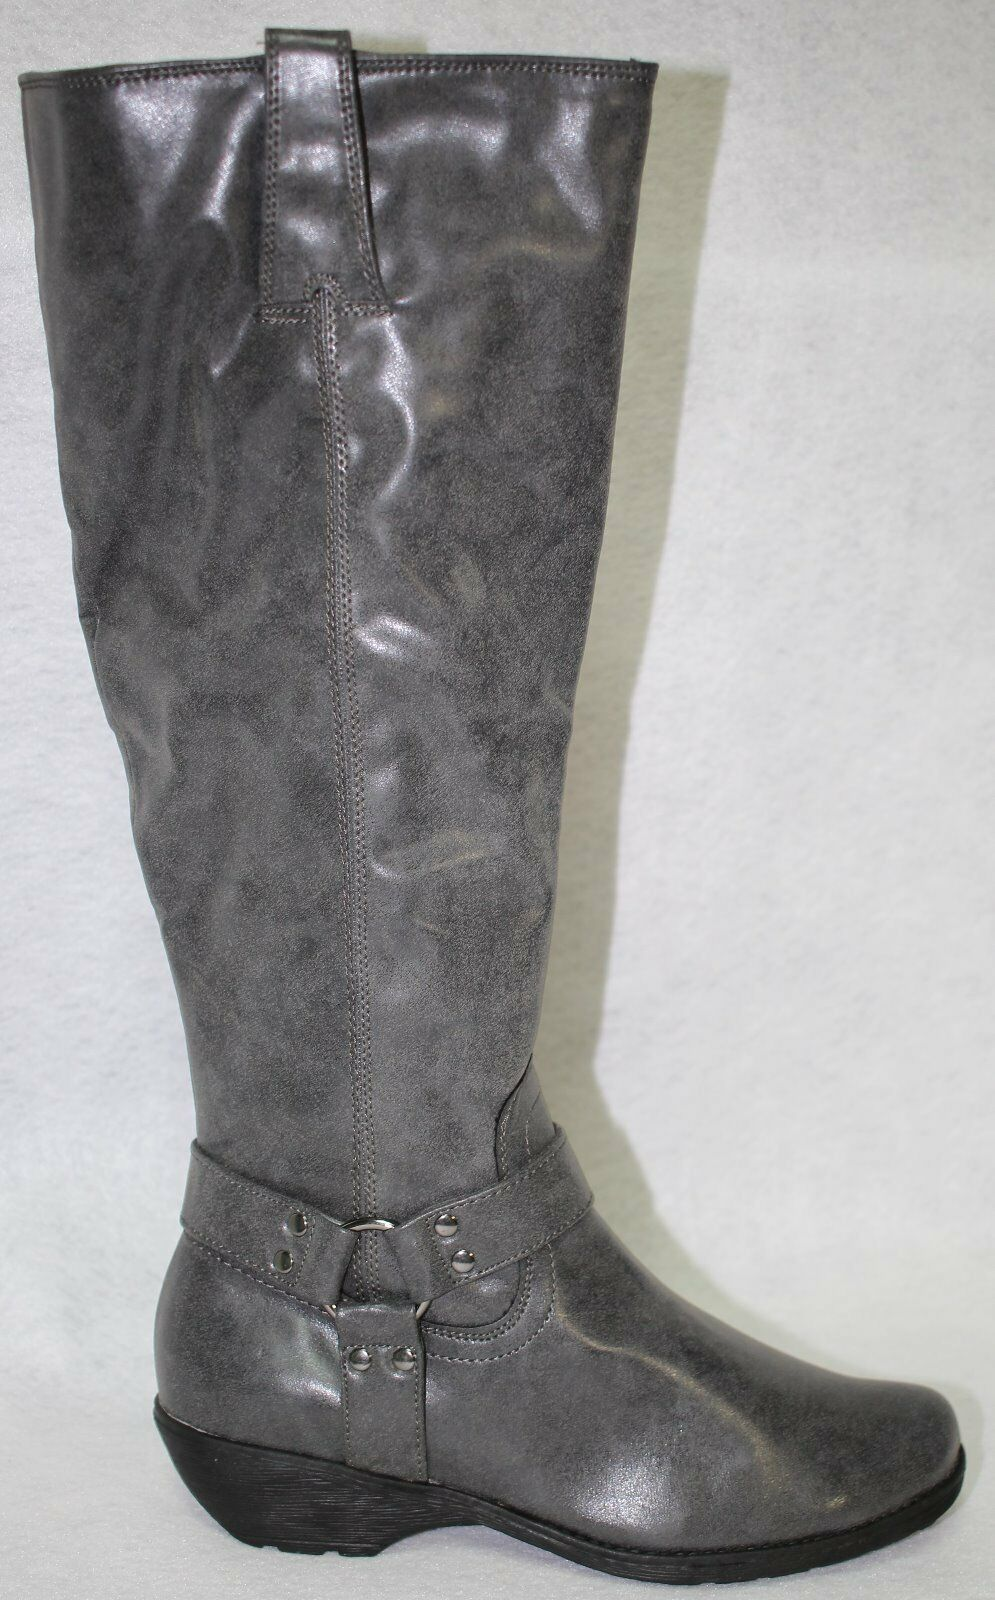 A2 By Aerosoles In Gray An Instint Damens Stiefel Gray In Größe US 5.5 M c73be7